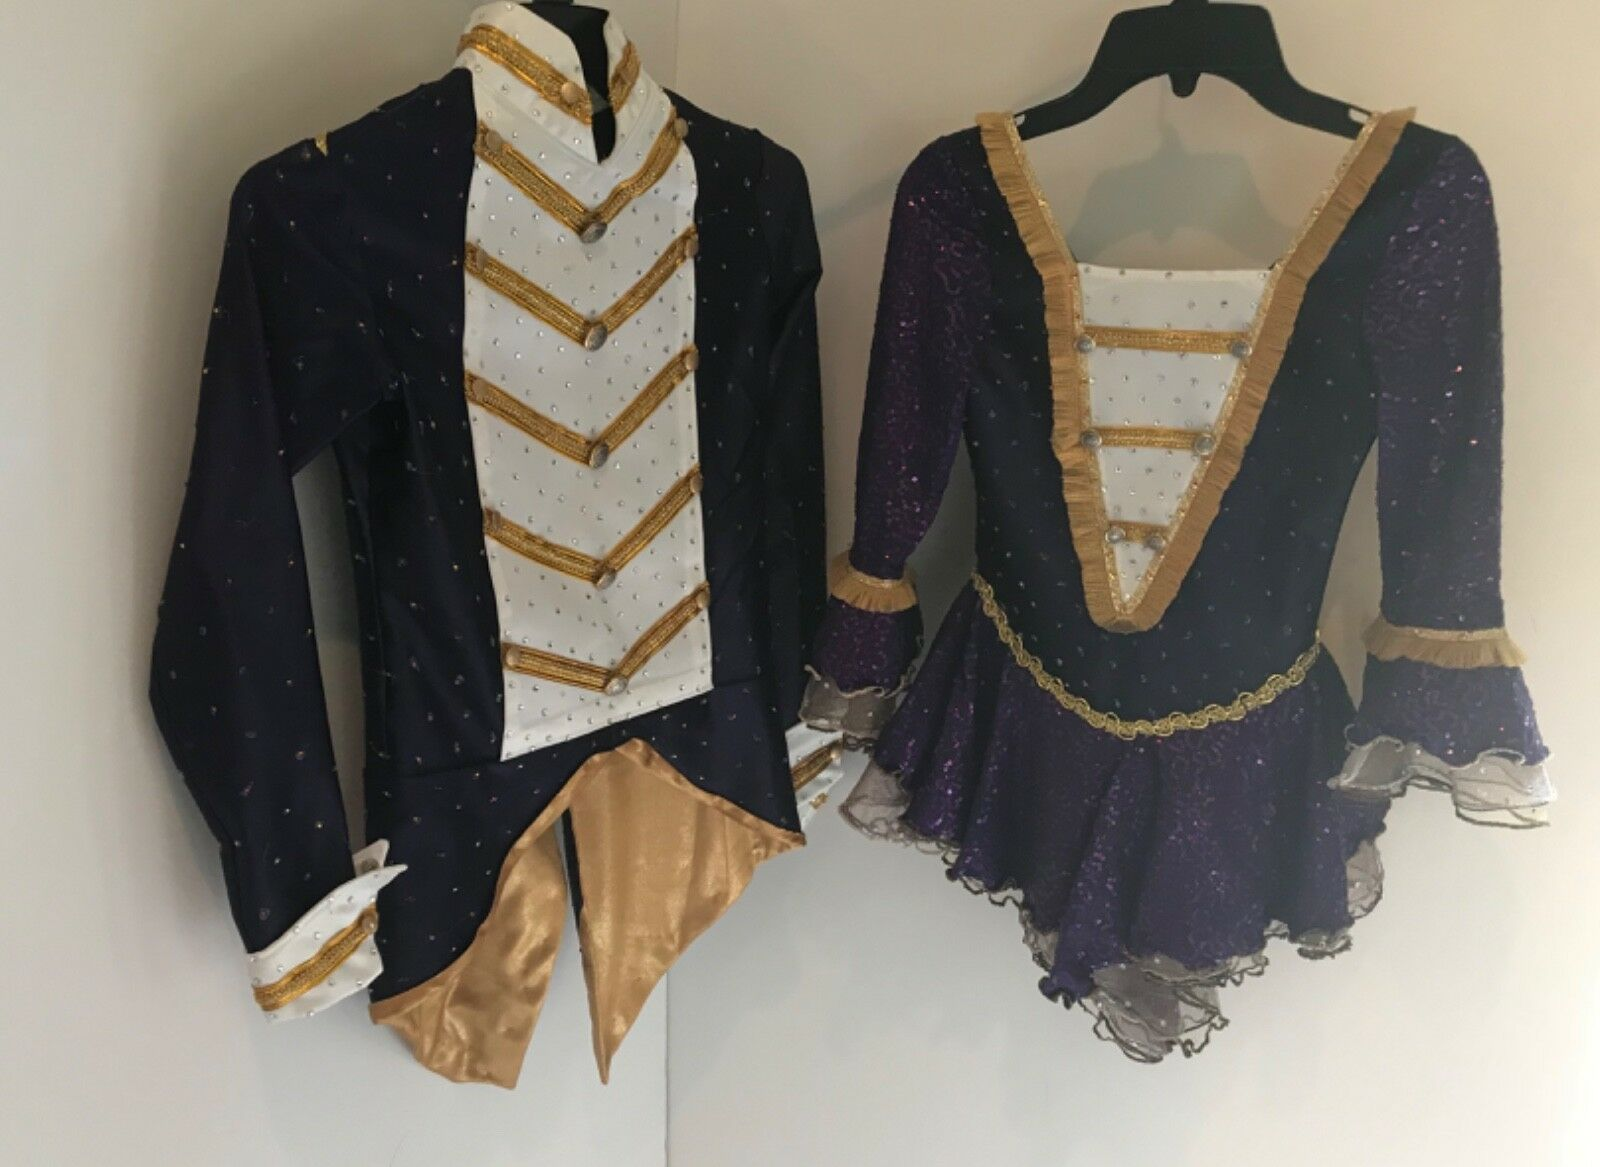 Competive s  team outfits for dance or pairs with  swartzski crystals  discount low price